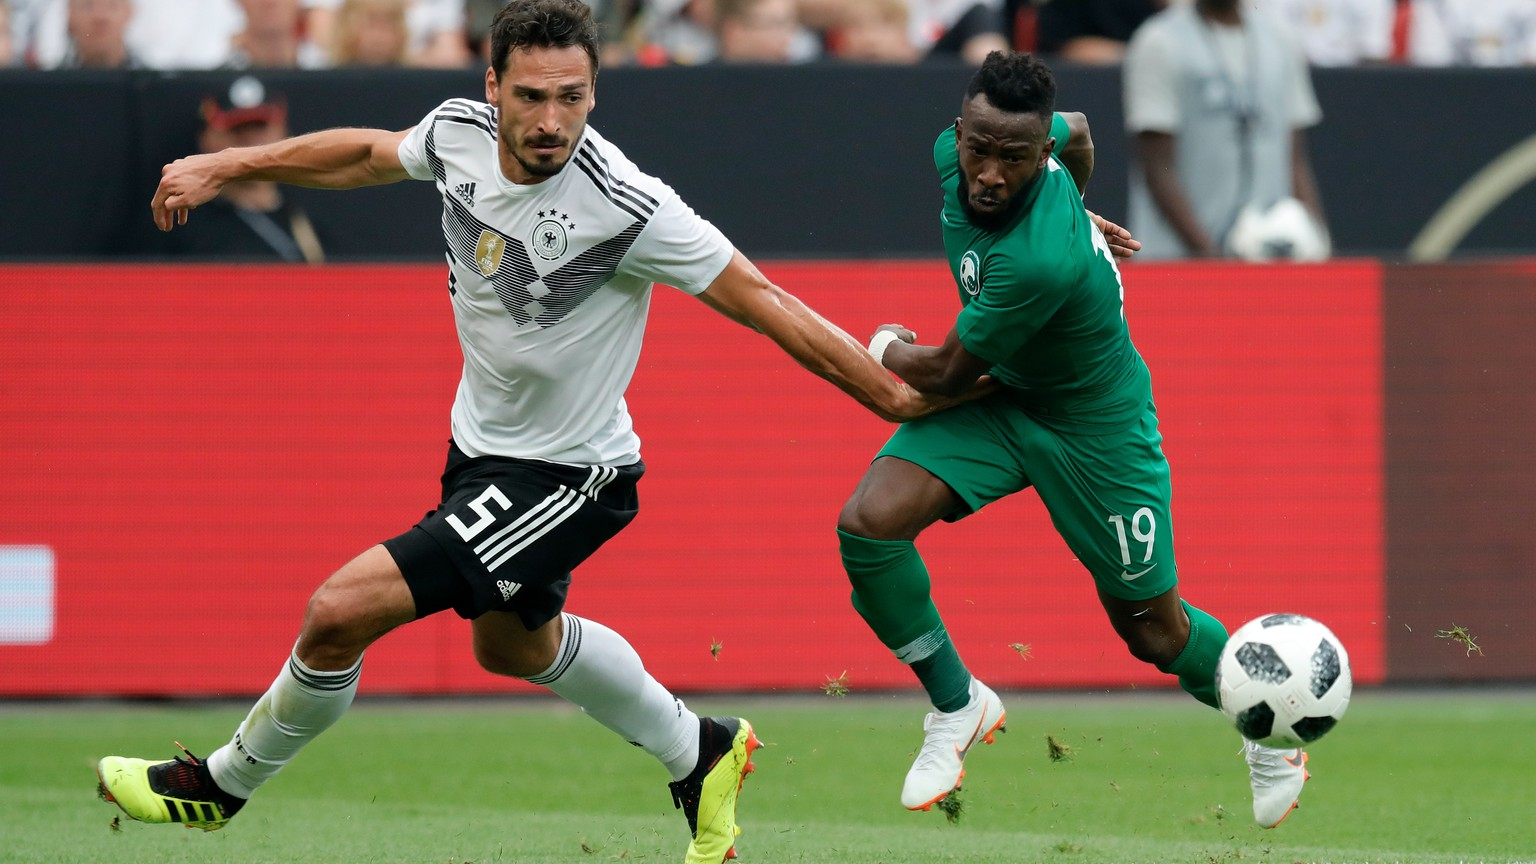 epa06794819 Saudi Arabia's Fahad Almuwallad (R) and Germany's Mats Hummels in action during the international friendly soccer match between Germany and Saudi Arabia in Leverkusen, Germany, 08 June 2018.  EPA/RONALD WITTEK